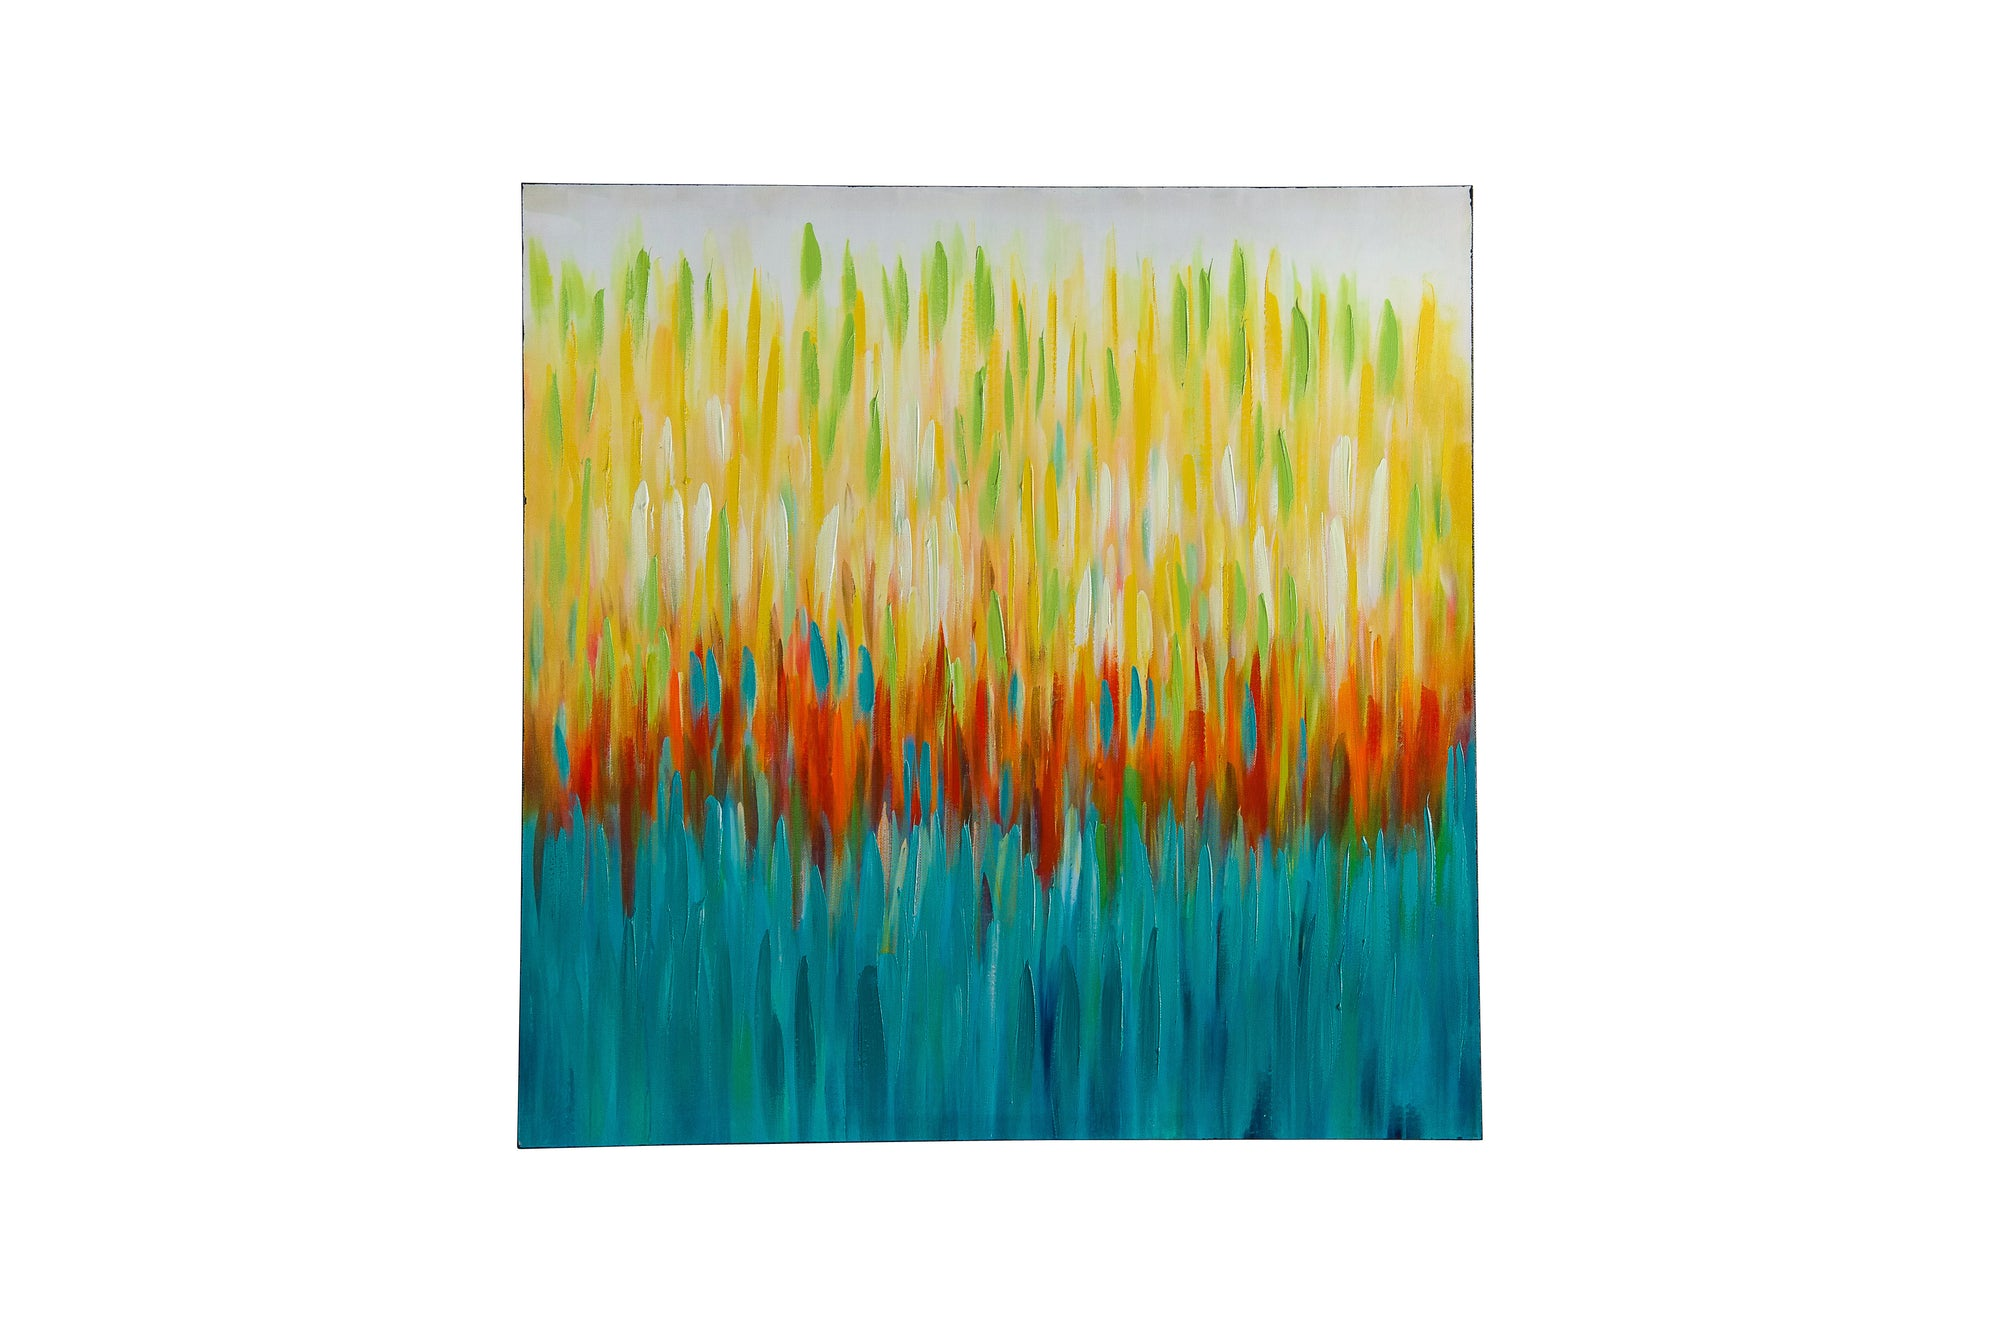 colour stream multi c hand painted wall art on canvas - Fervor + Hue